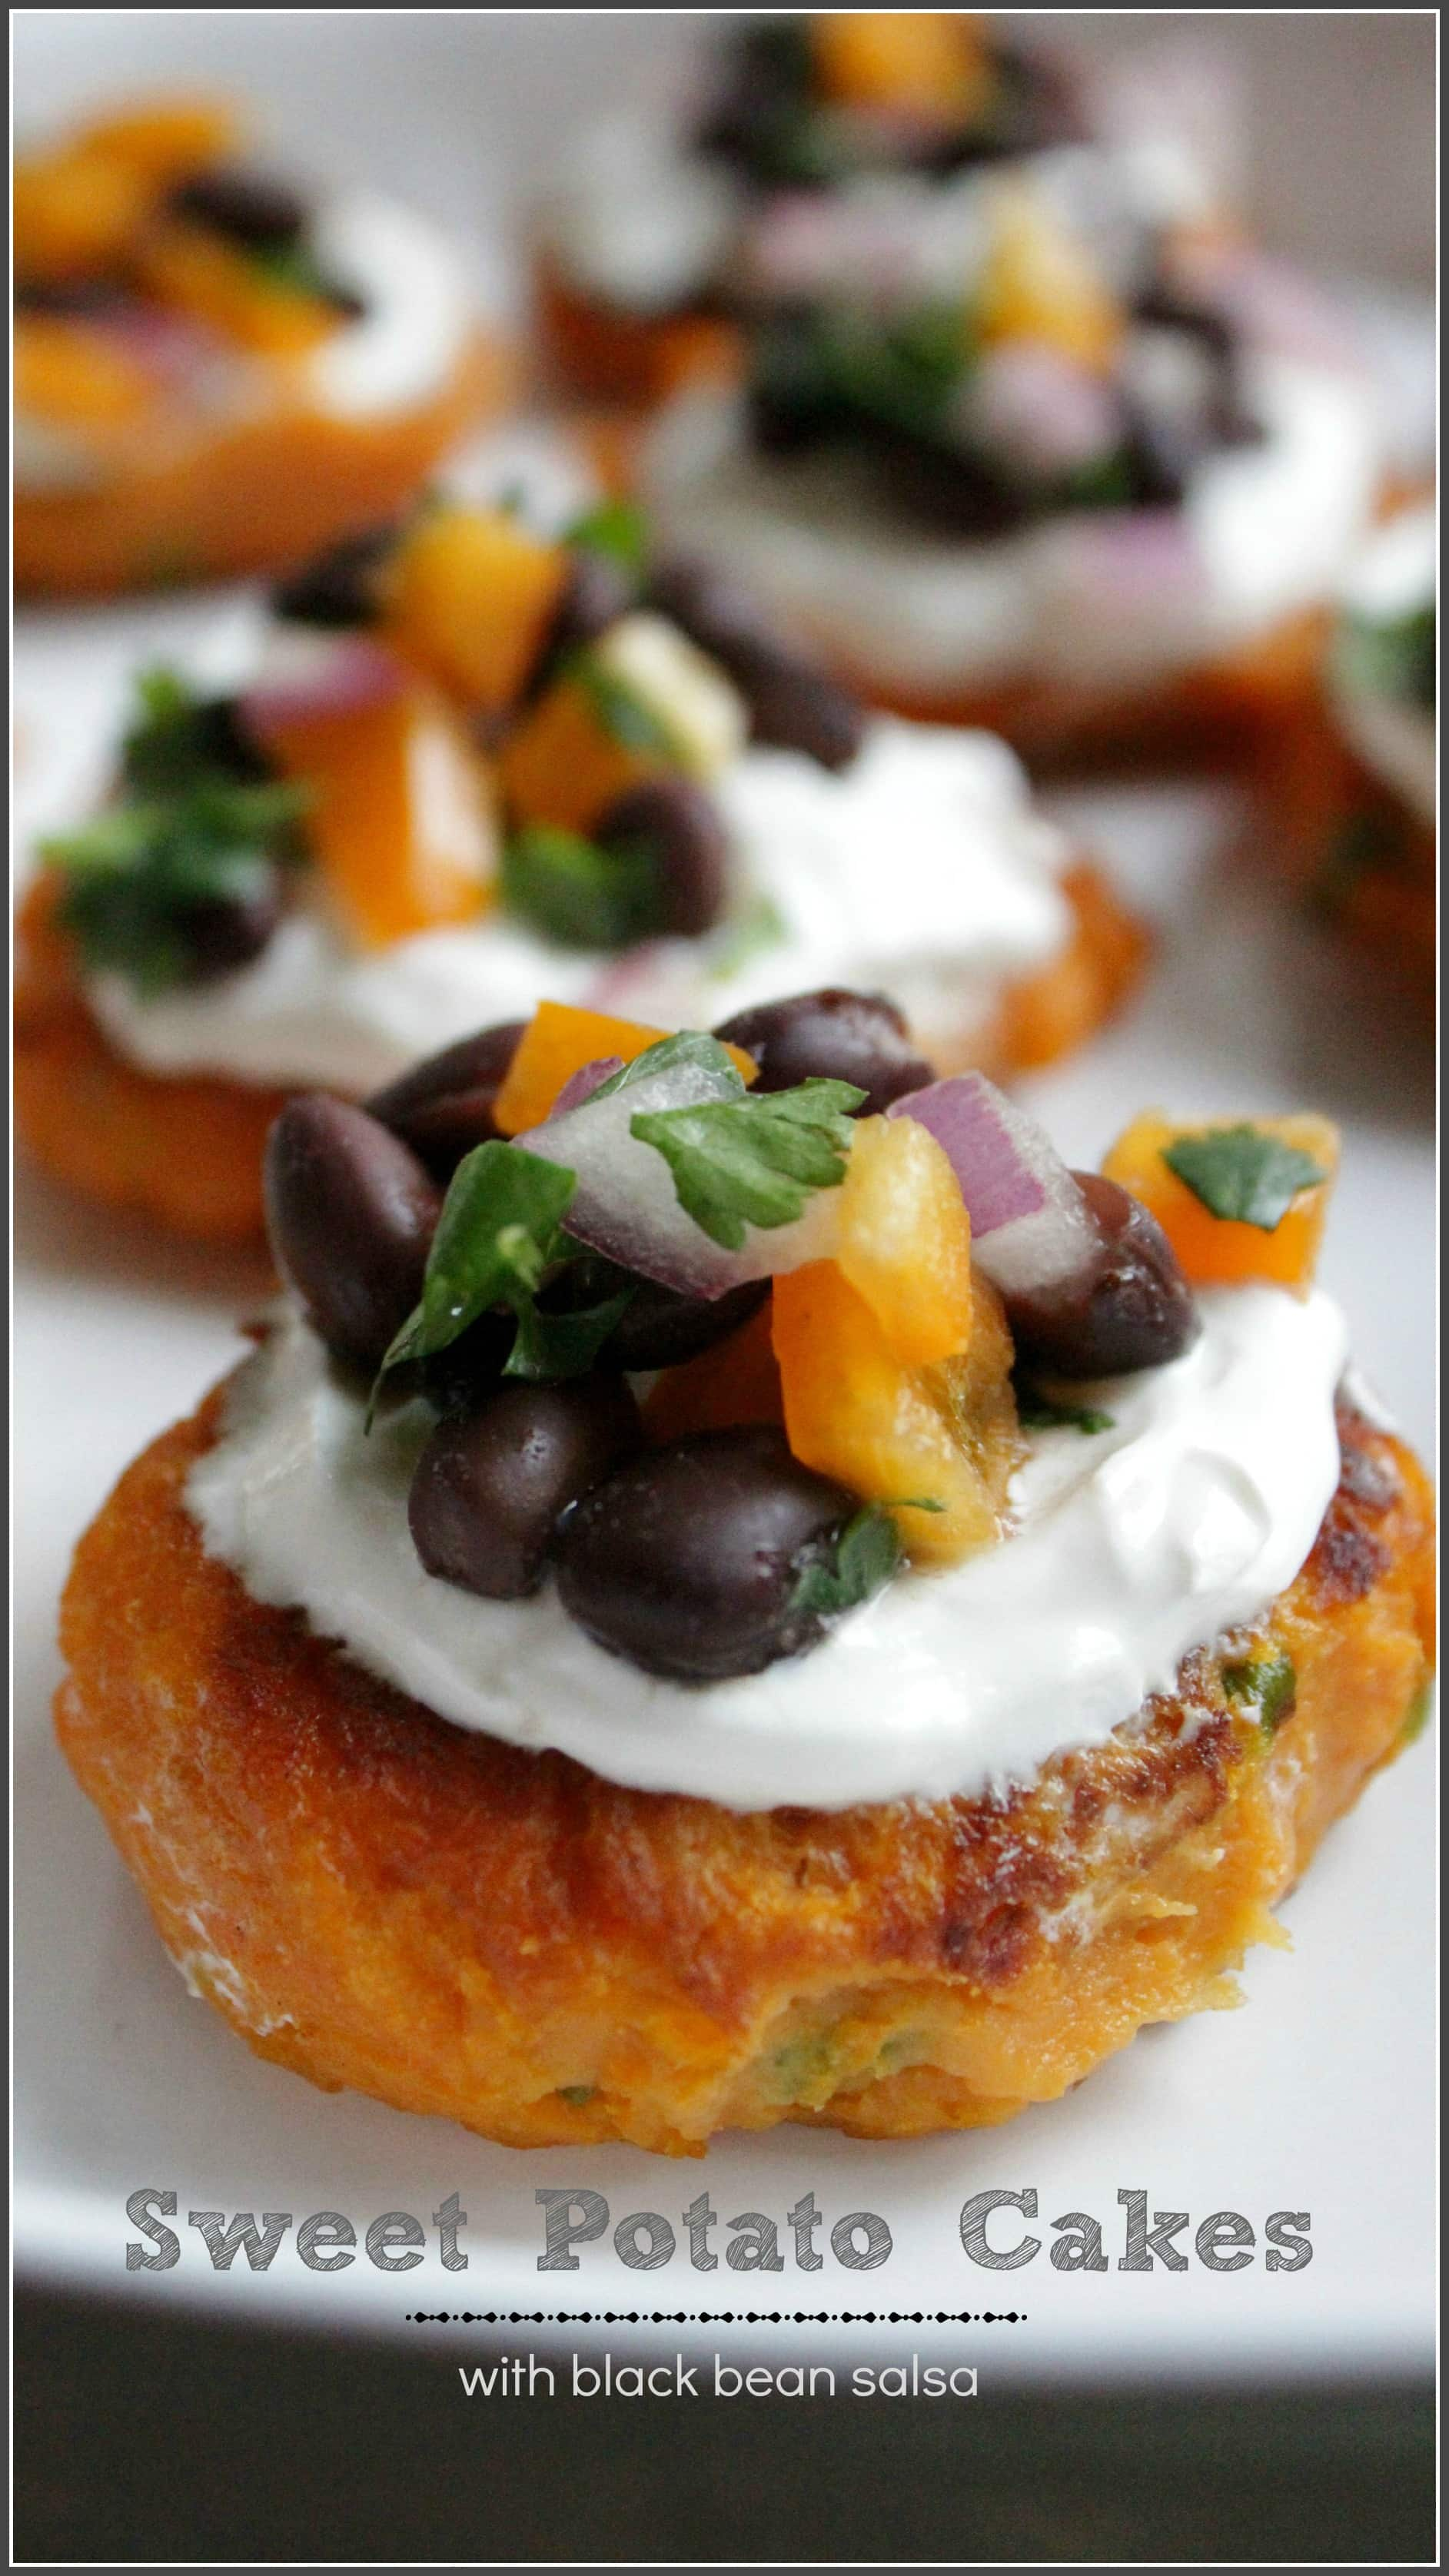 Sweet Potato Cakes topped with sour cream and black bean salsa